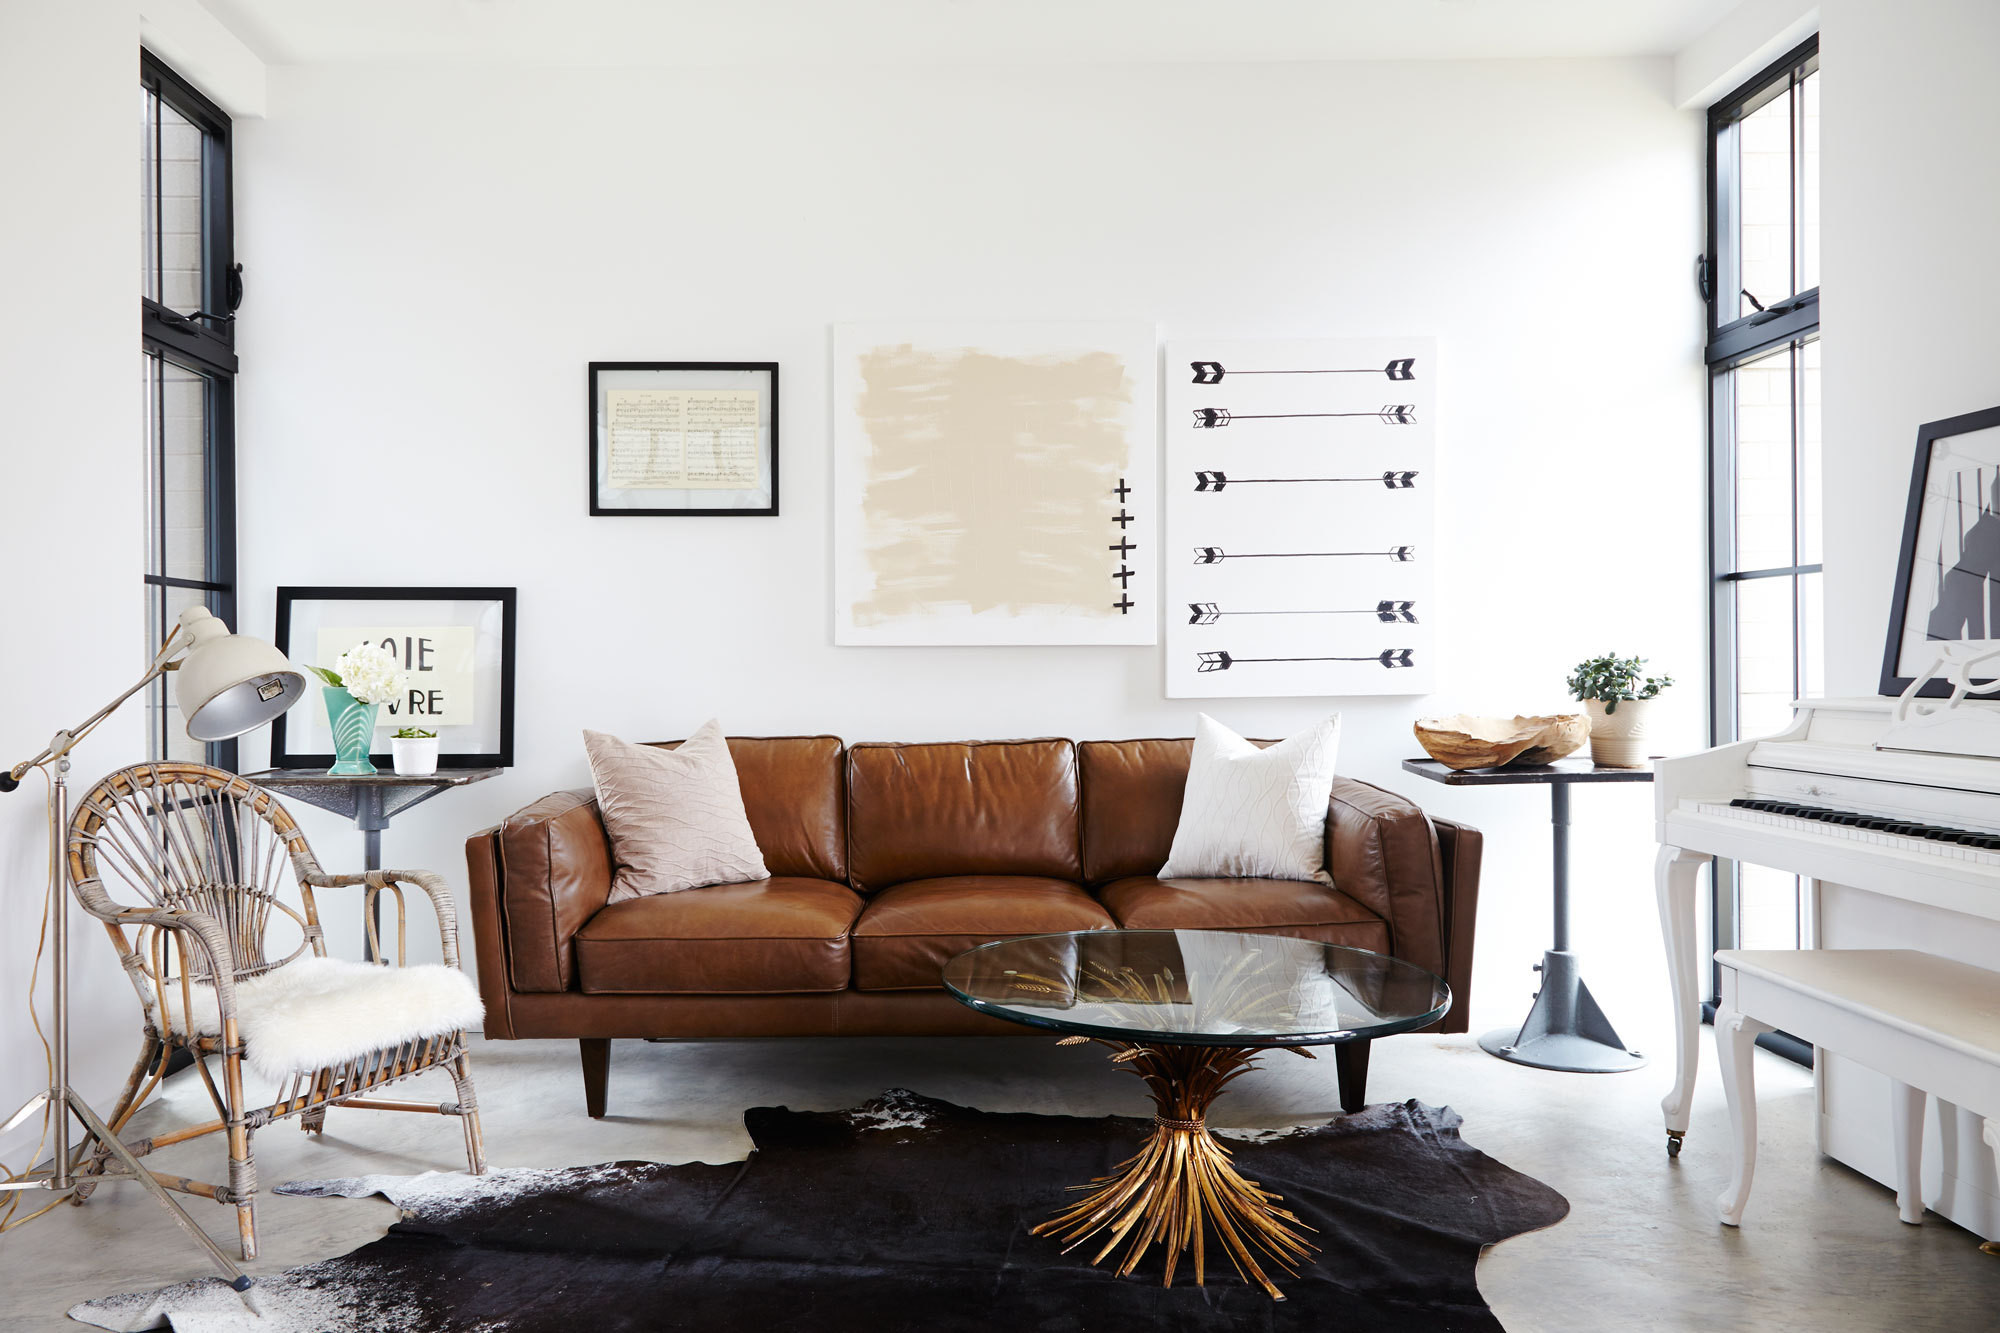 Pitch Perfect - Home Tour: An Ohio House by Leanne Ford - Lonny